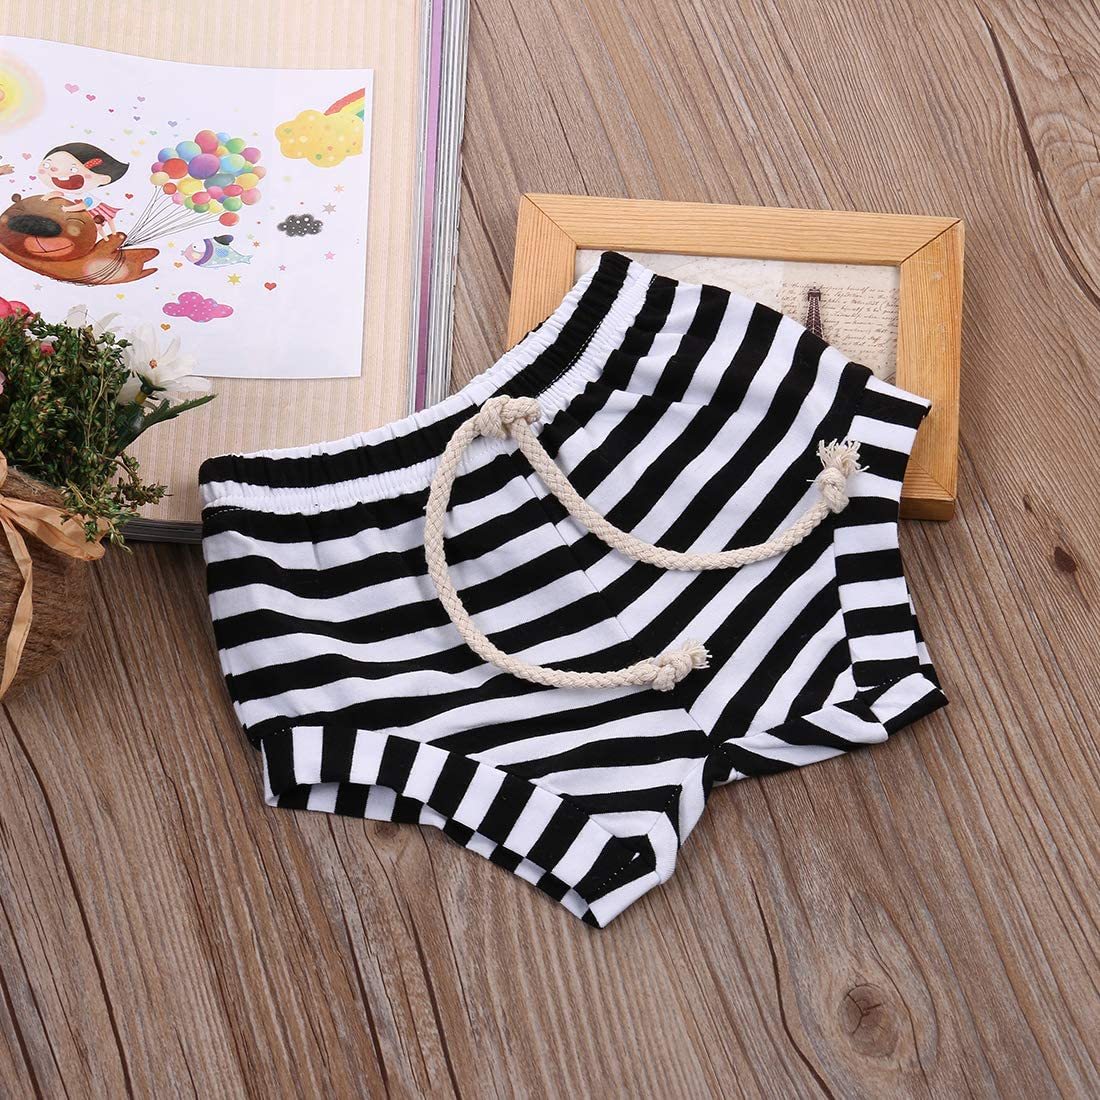 Newborn Infant Baby Boys Girls Cotton Summer Bottoms Bloomers Hot Short Pants One-Pieces